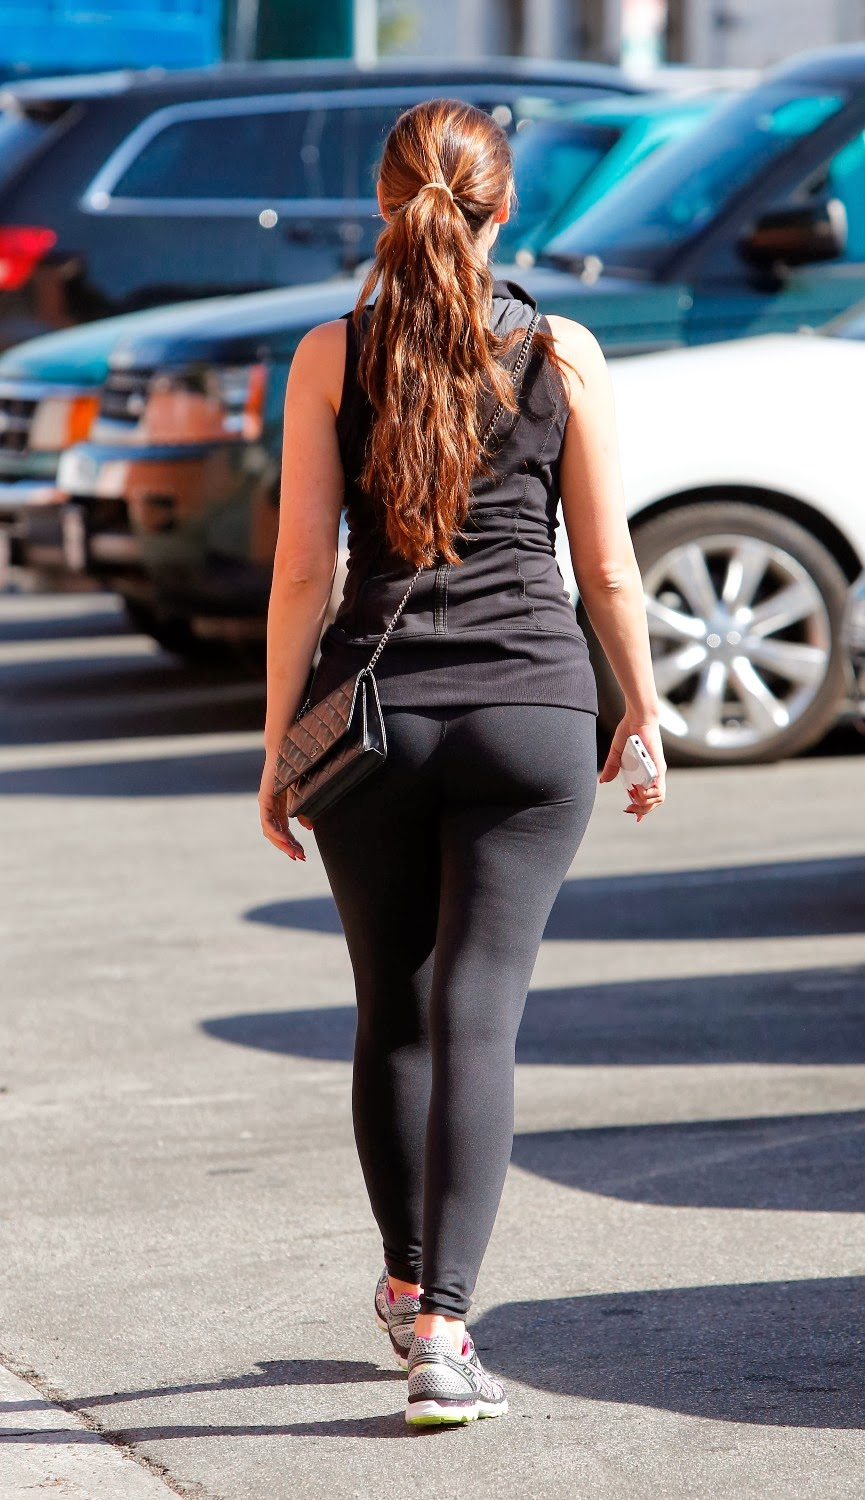 Kelly Brook Round Big Booty In Tights While Out In La -3860